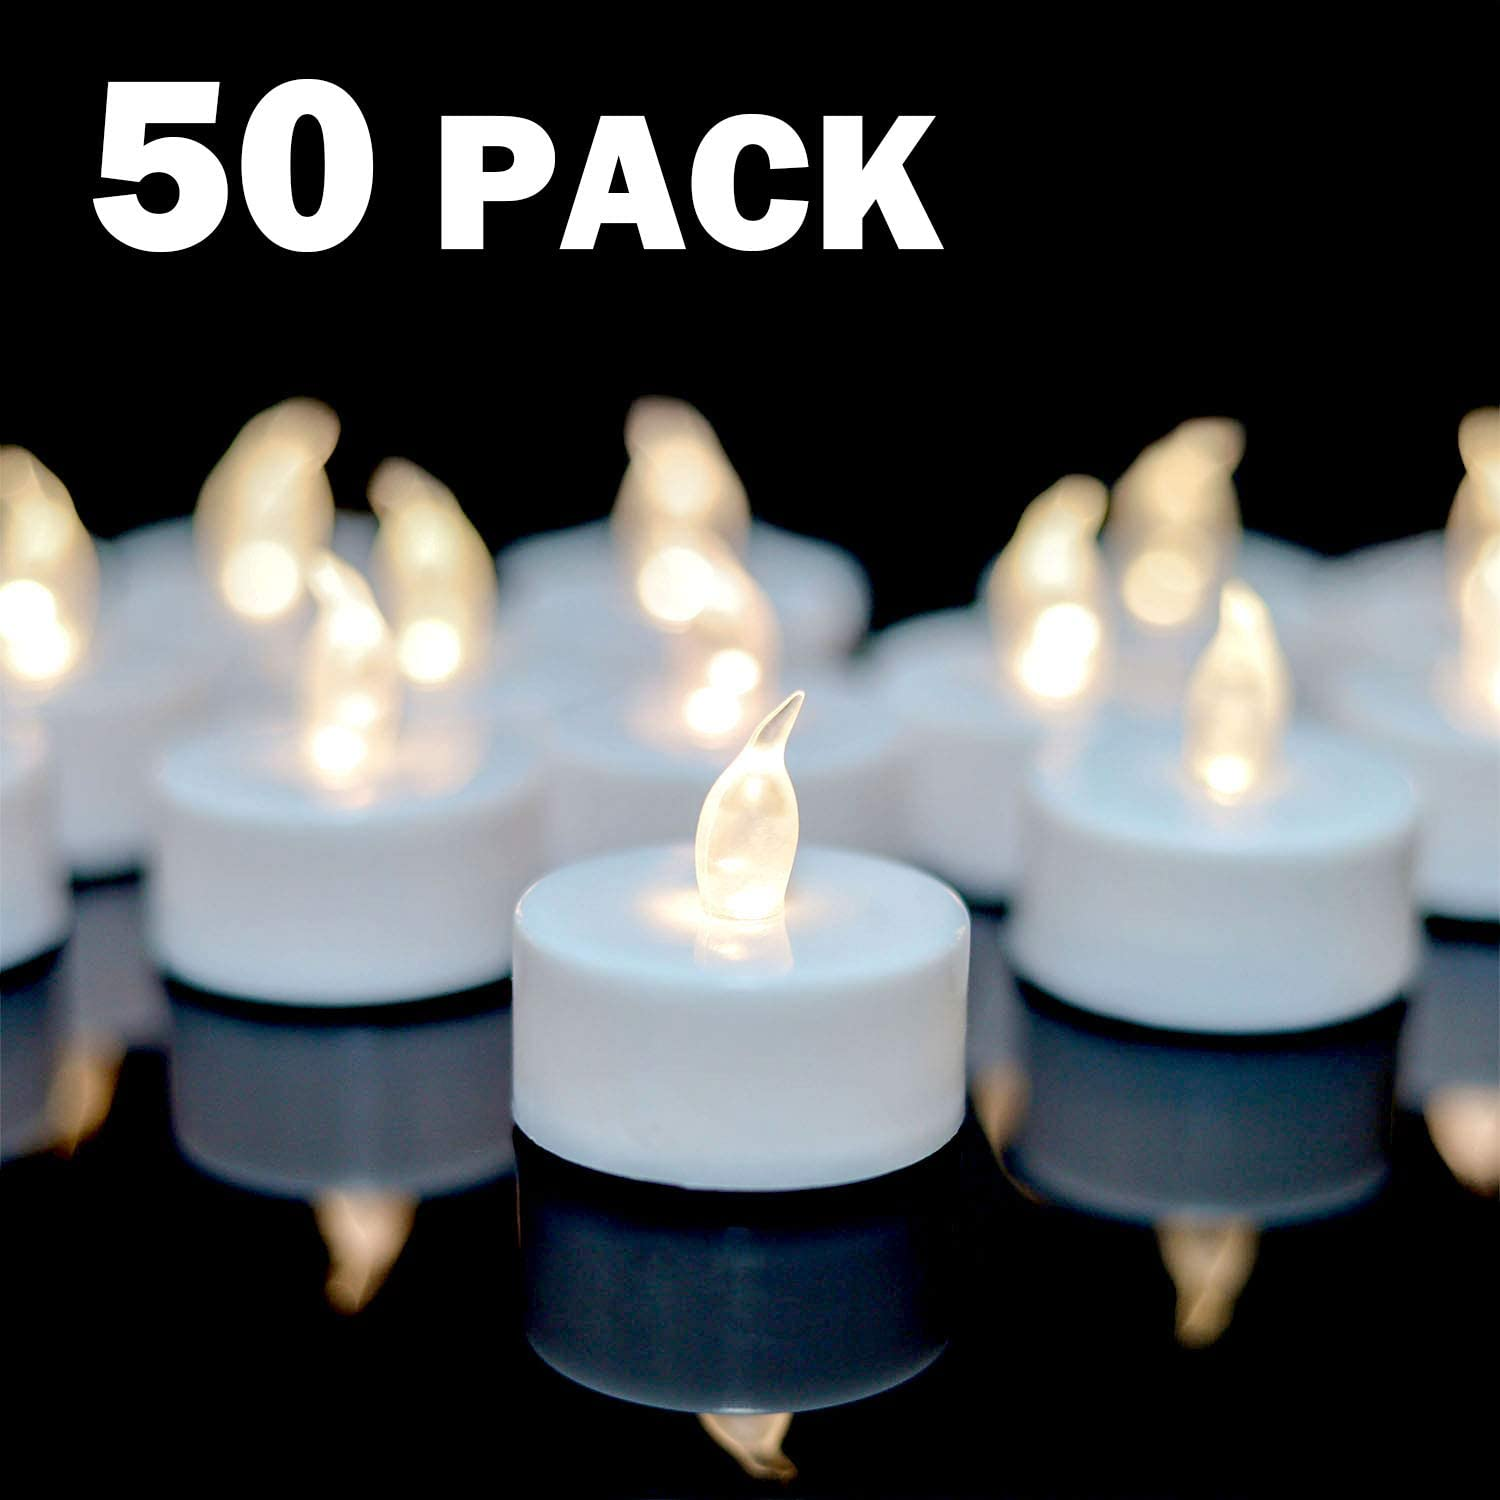 YIWER Flameless LED Tealight Candles 100 Hours Pack of 50 tealights with Battery Operated Flickering Bulb for Seasonal Festival Celebrations,Small Realistic Candles in Warm White